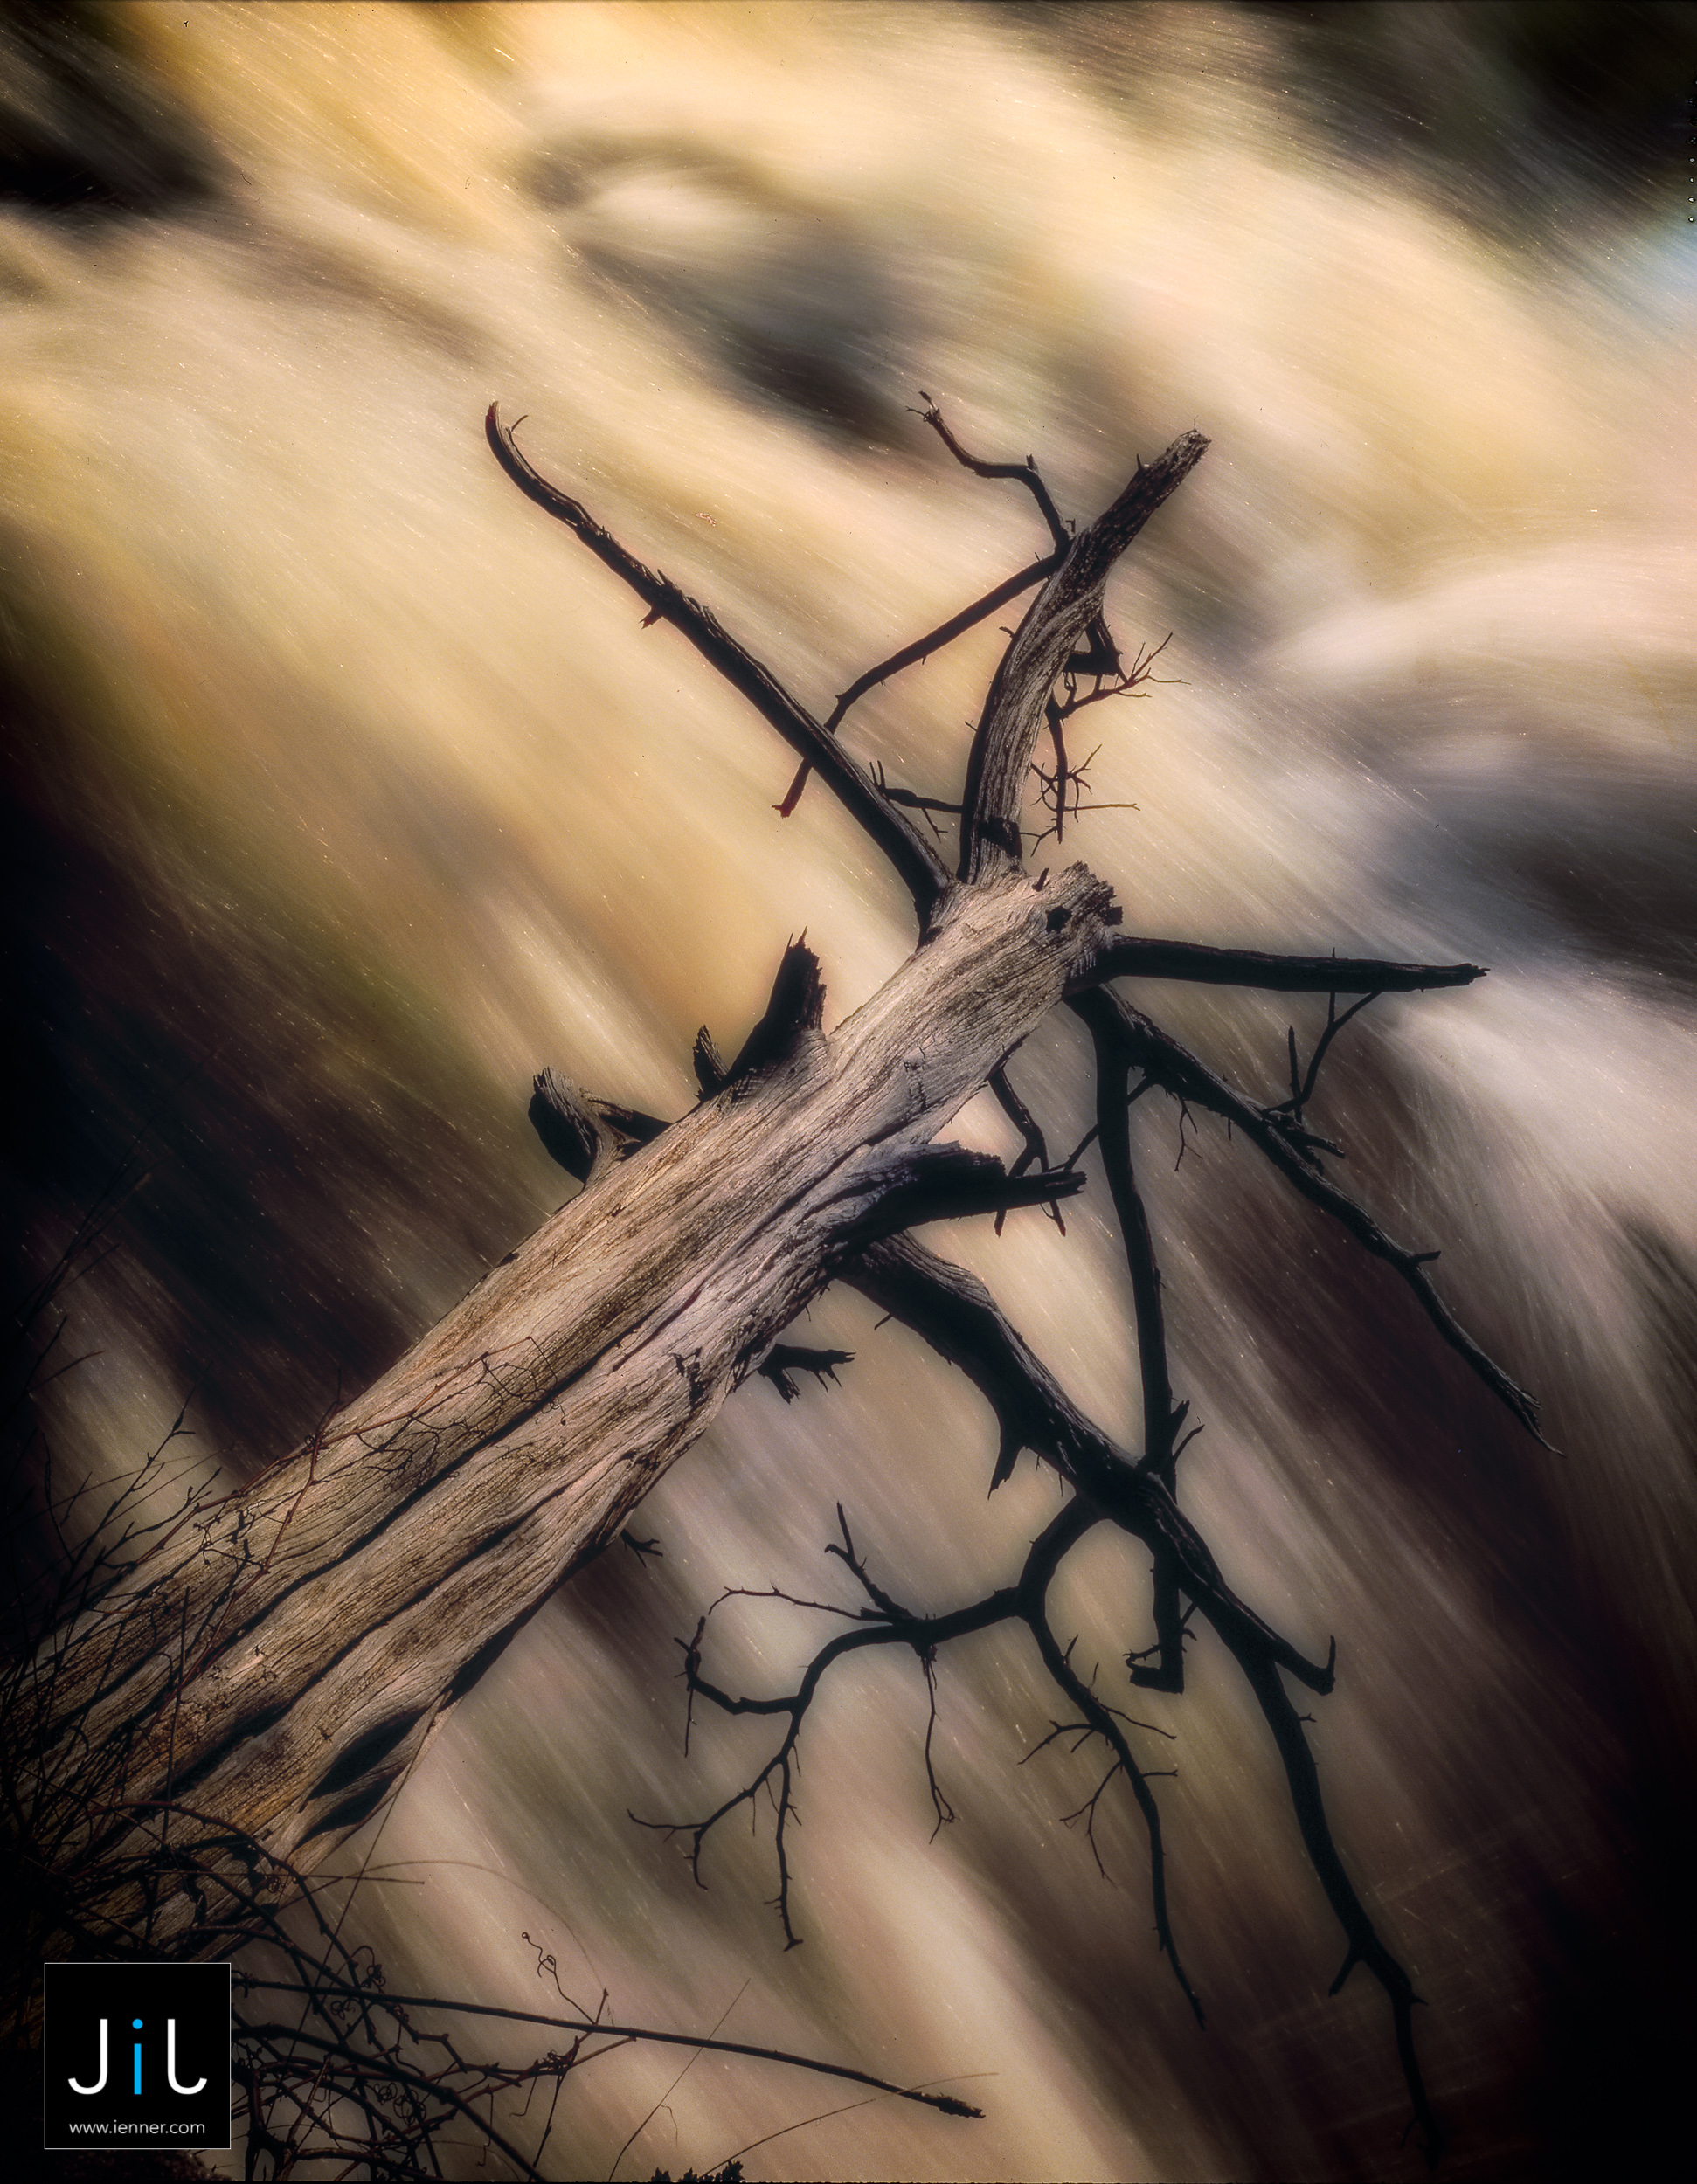 ©Jimmy ienner, Jr. Fly Fishing Photography